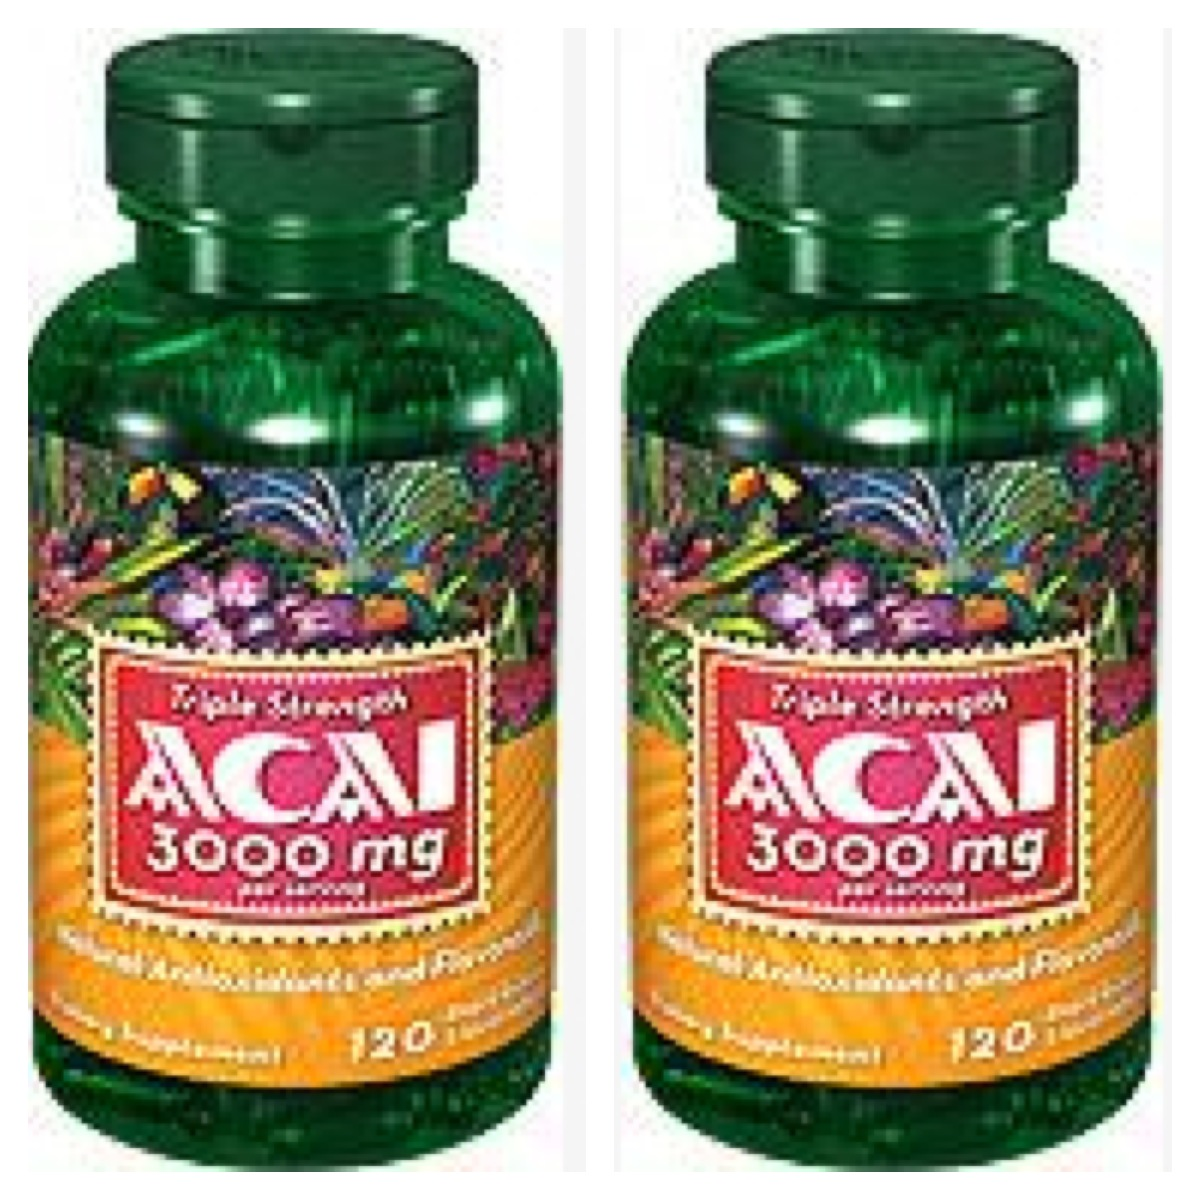 ACAI Berry 3000 mg 120 Softgels (2 Bottles)